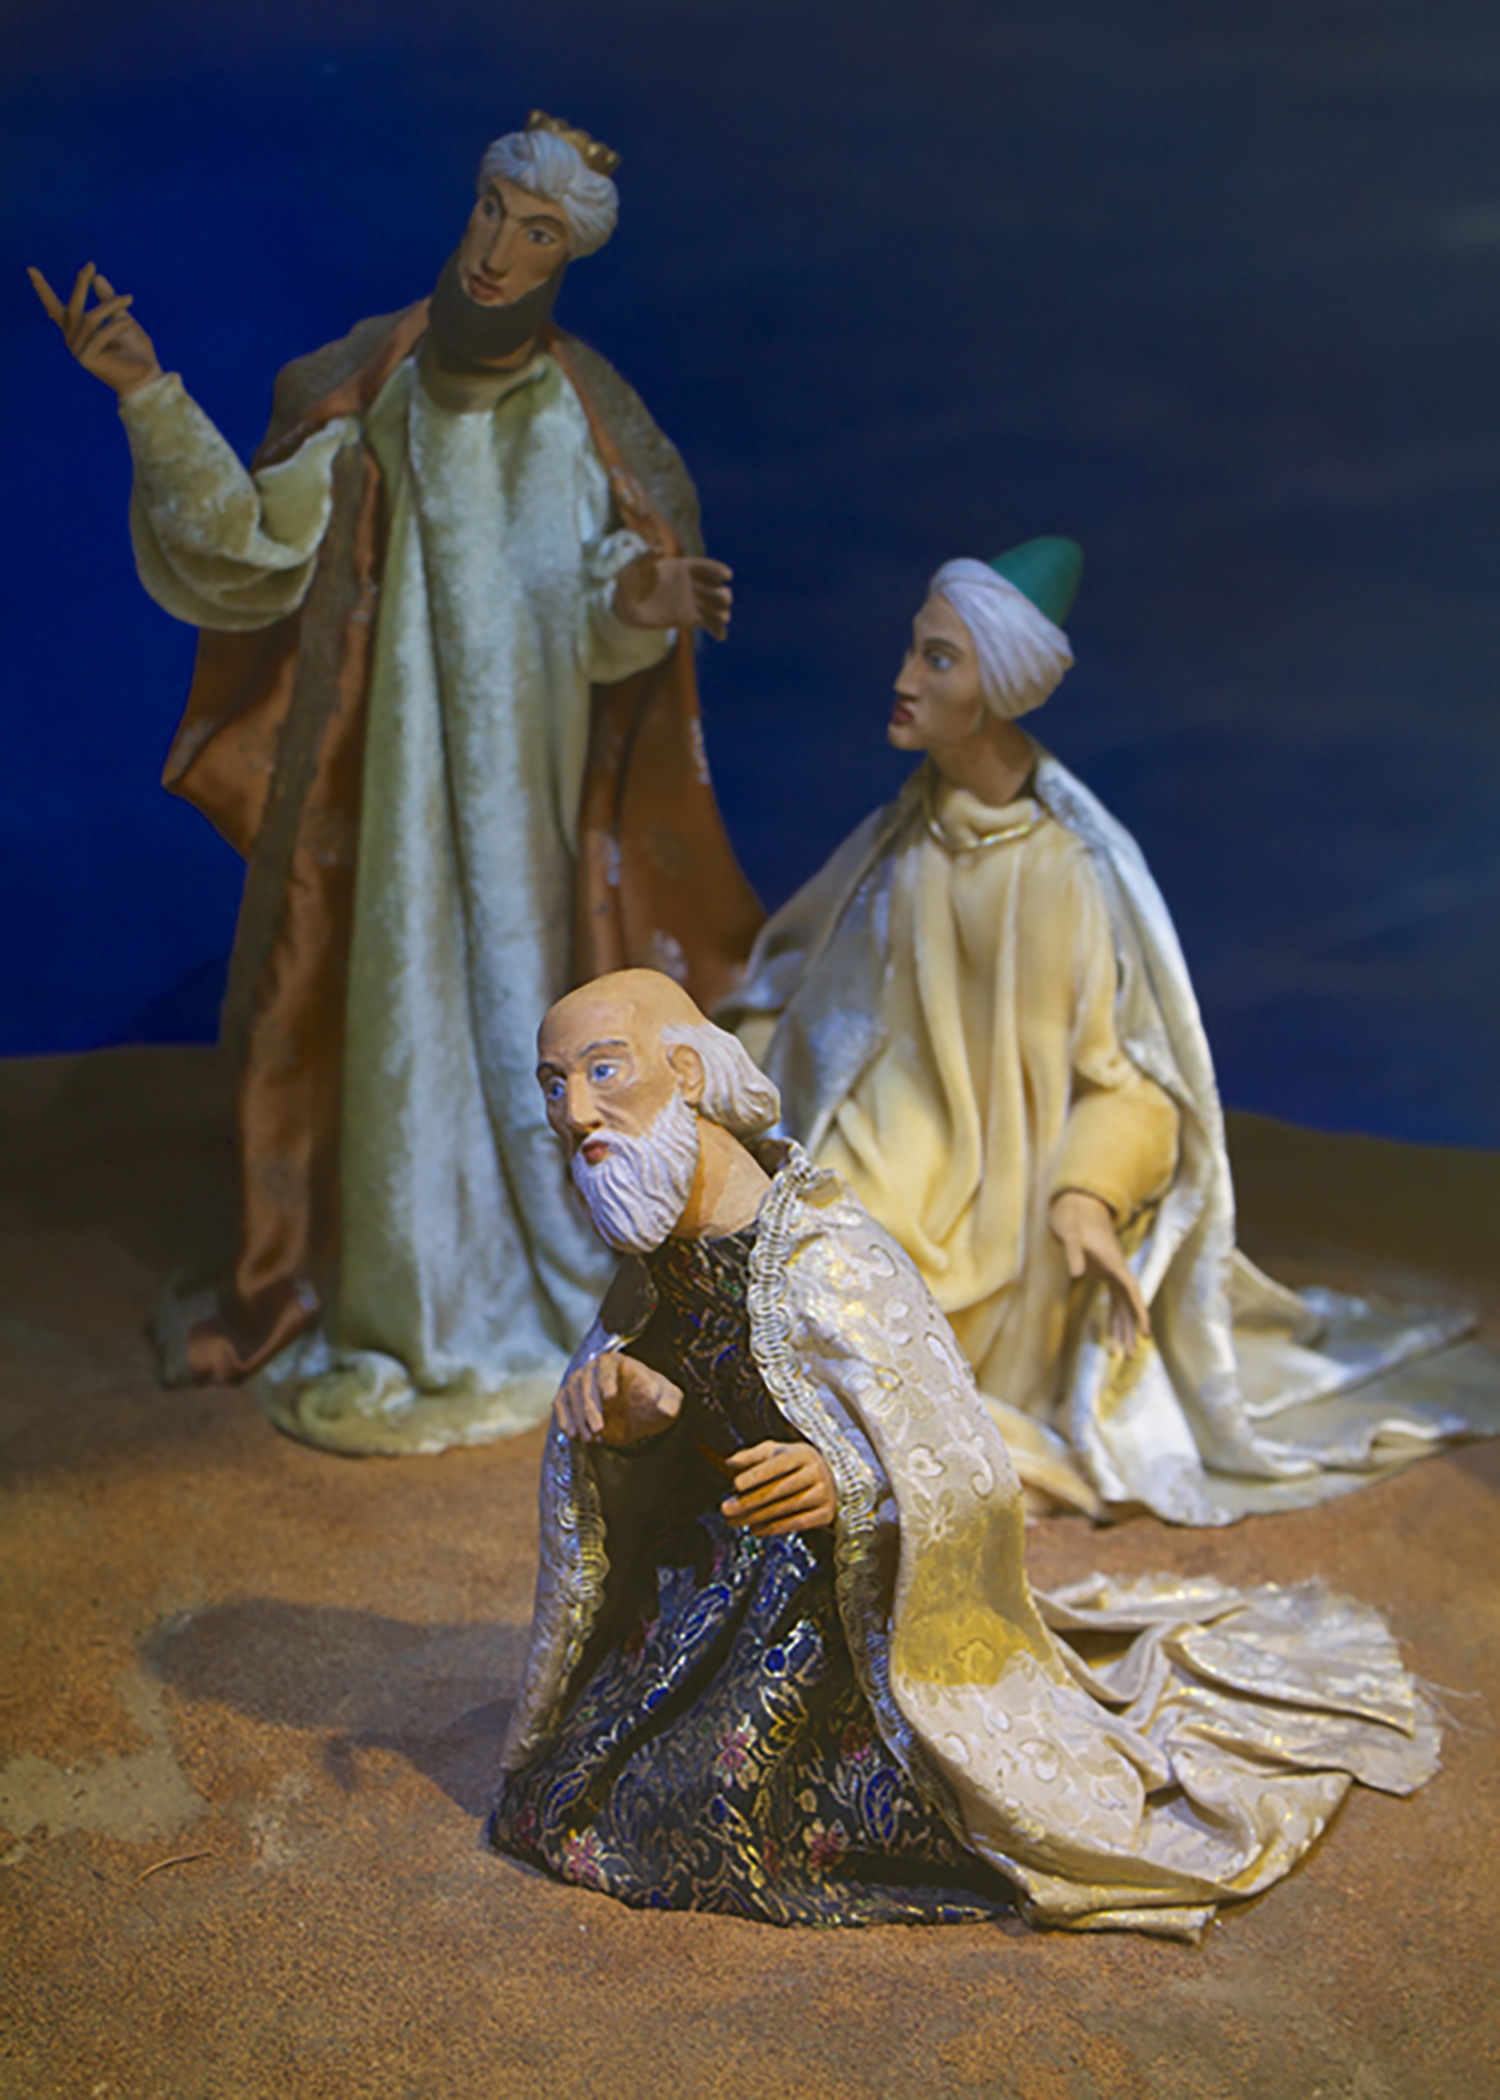 Figure 7: The wise men gazing at the Star of Bethlehem; one of the Nativity scenes from the Eisenhower White House now on exhibit in Gettysburg. Photo: Ed Gyllenhaal.